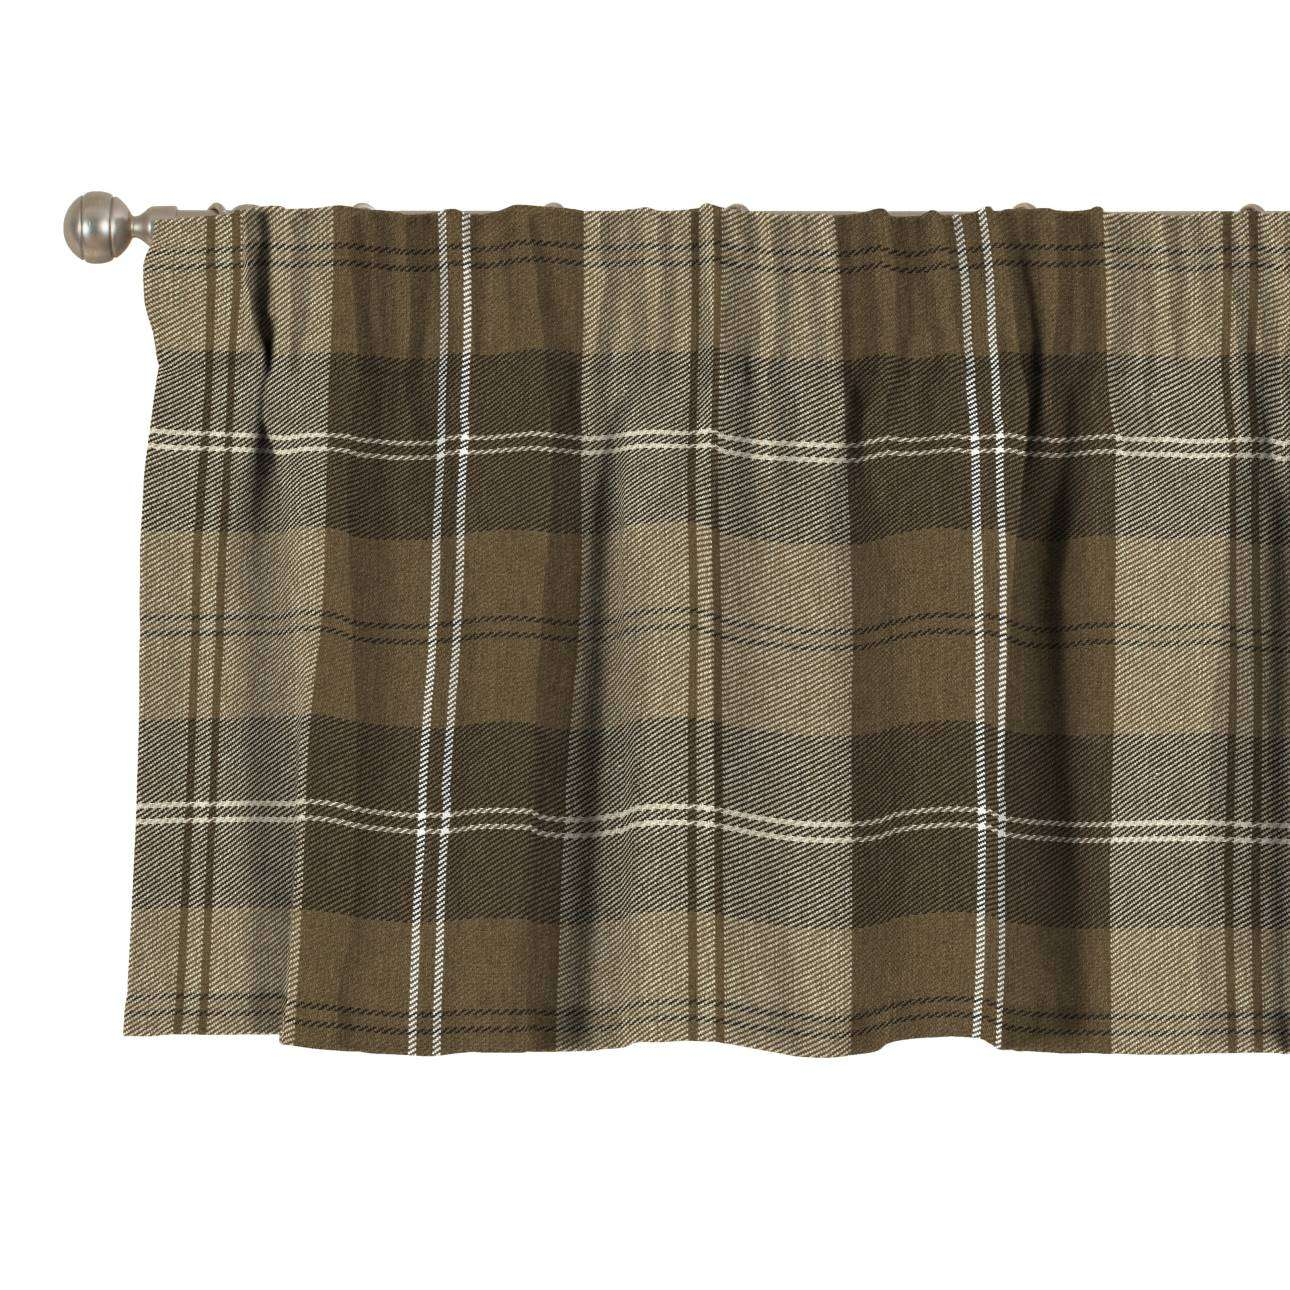 Pencil pleat pelmet 130 × 40 cm (51 × 16 inch) in collection Edinburgh, fabric: 115-76